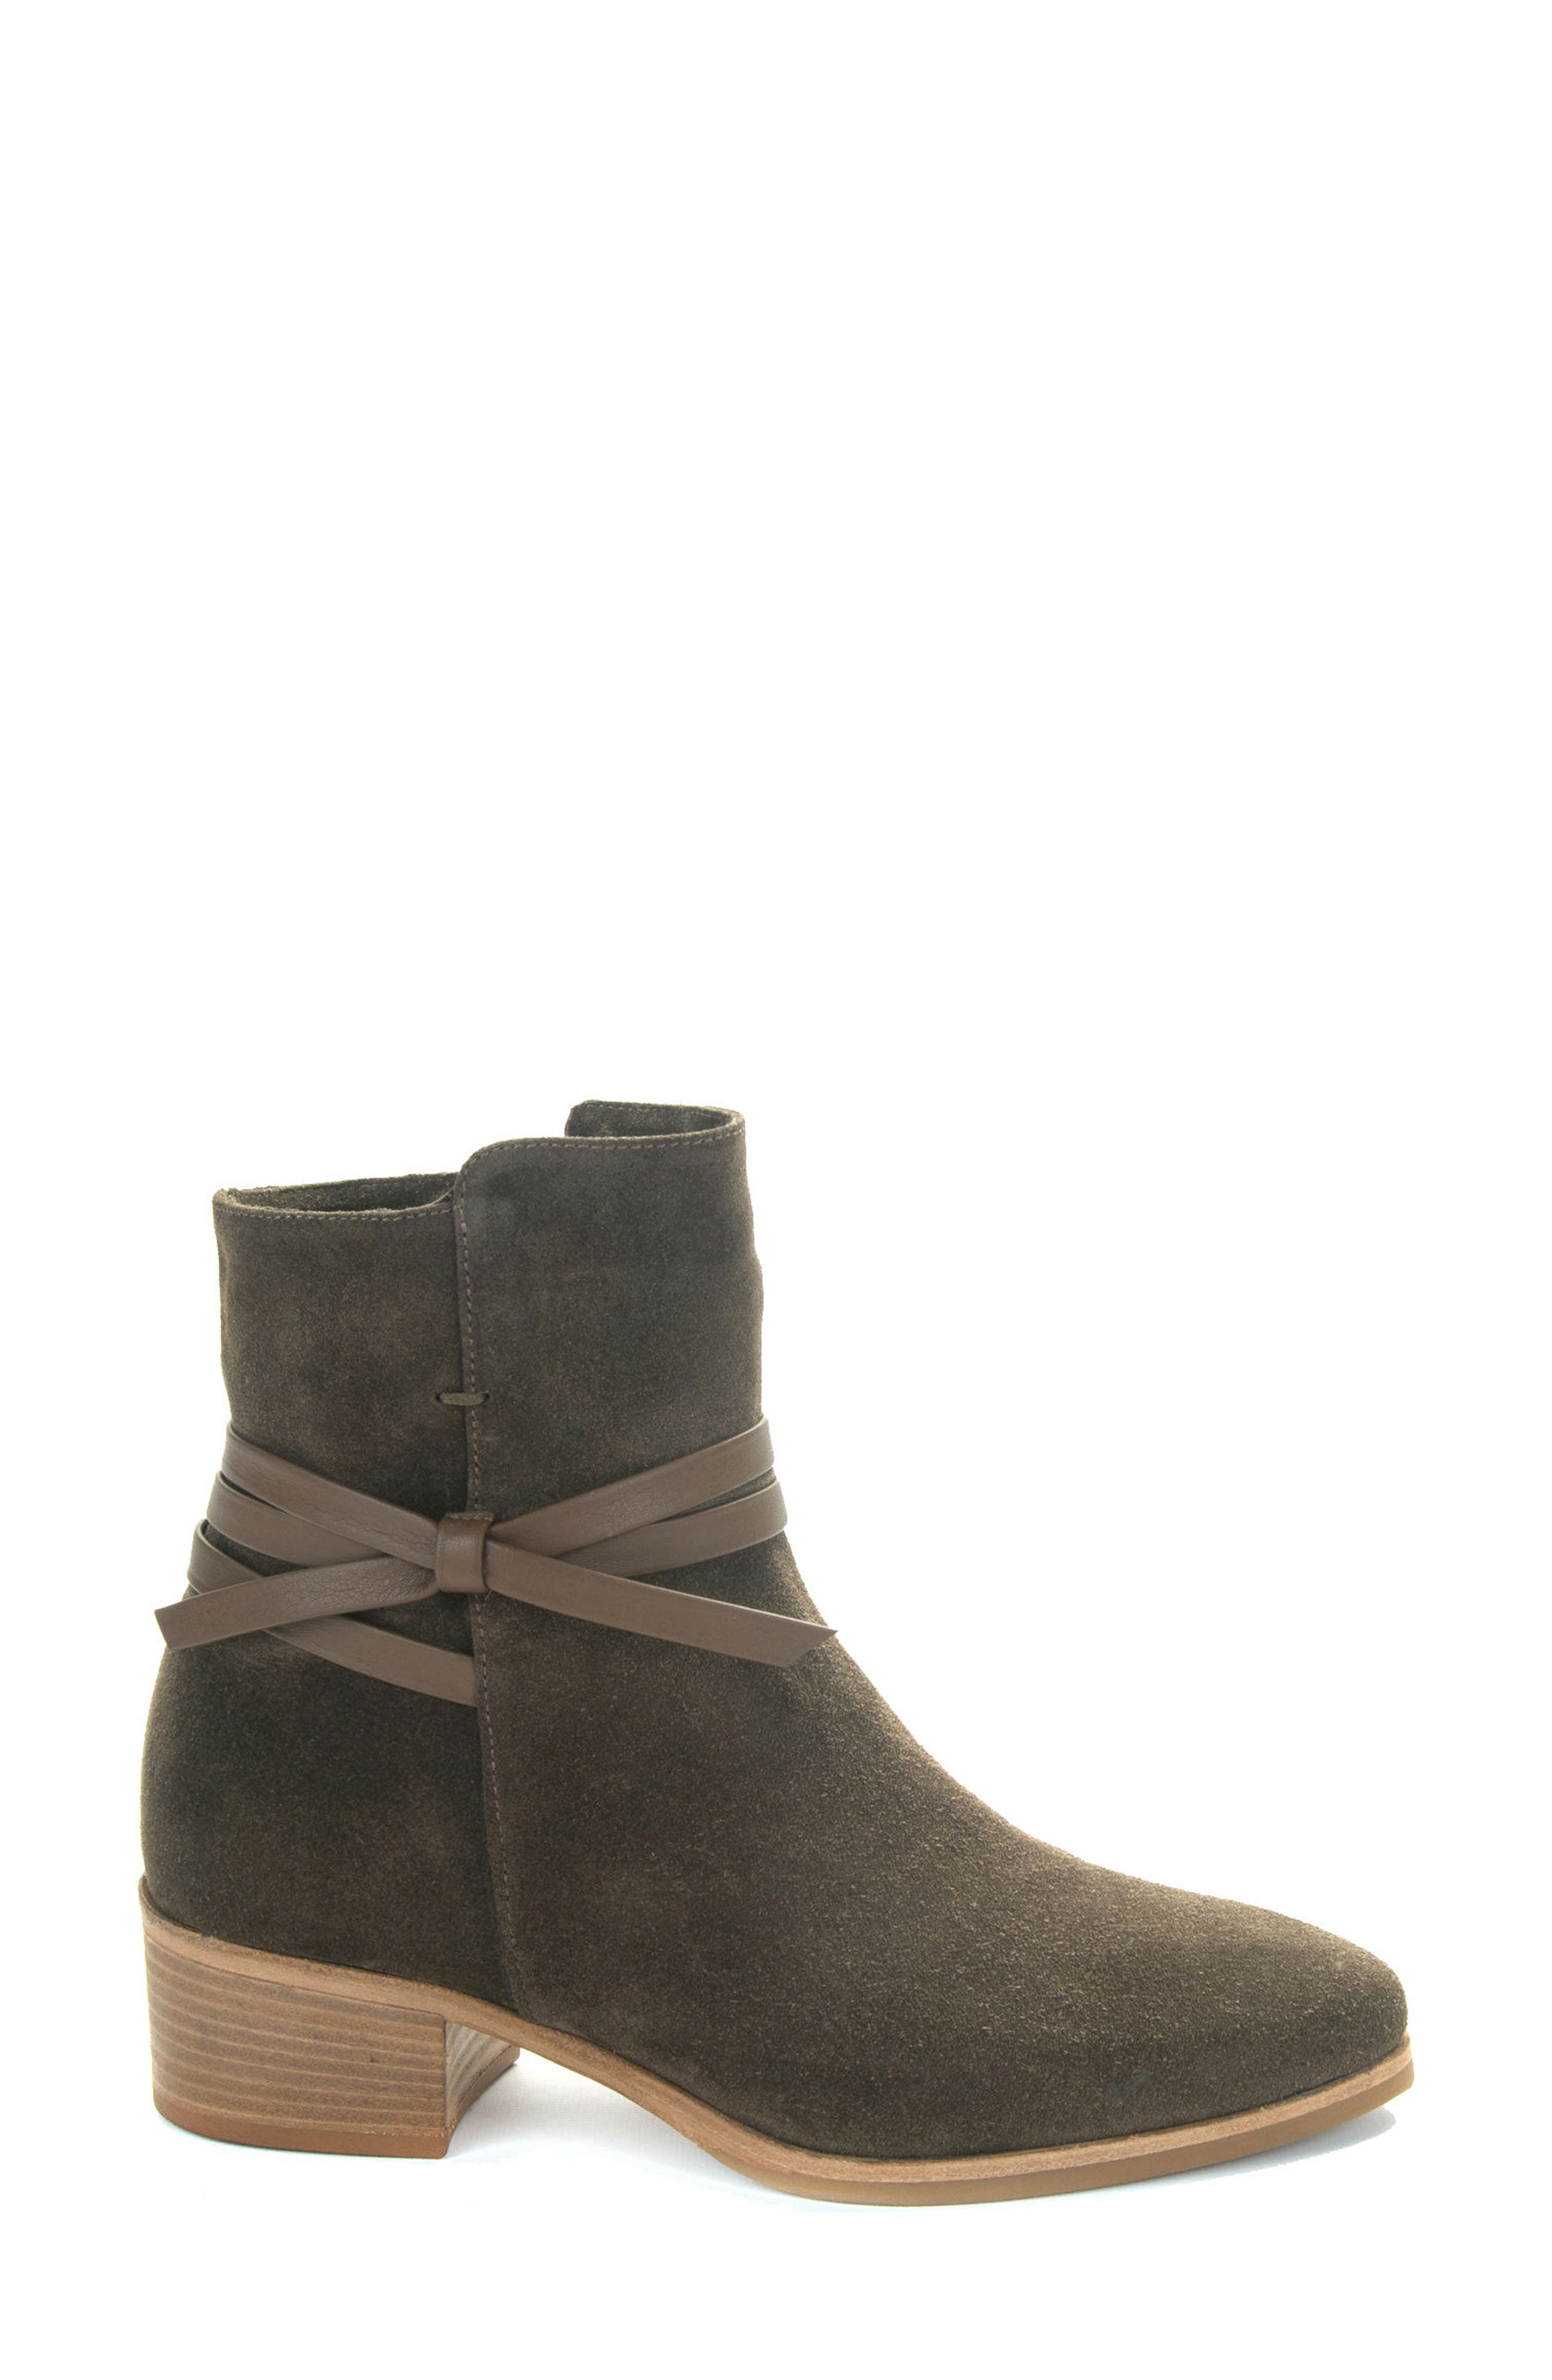 Donata Water-Resistant Bootie,                             Alternate thumbnail 3, color,                             Militare/ Green